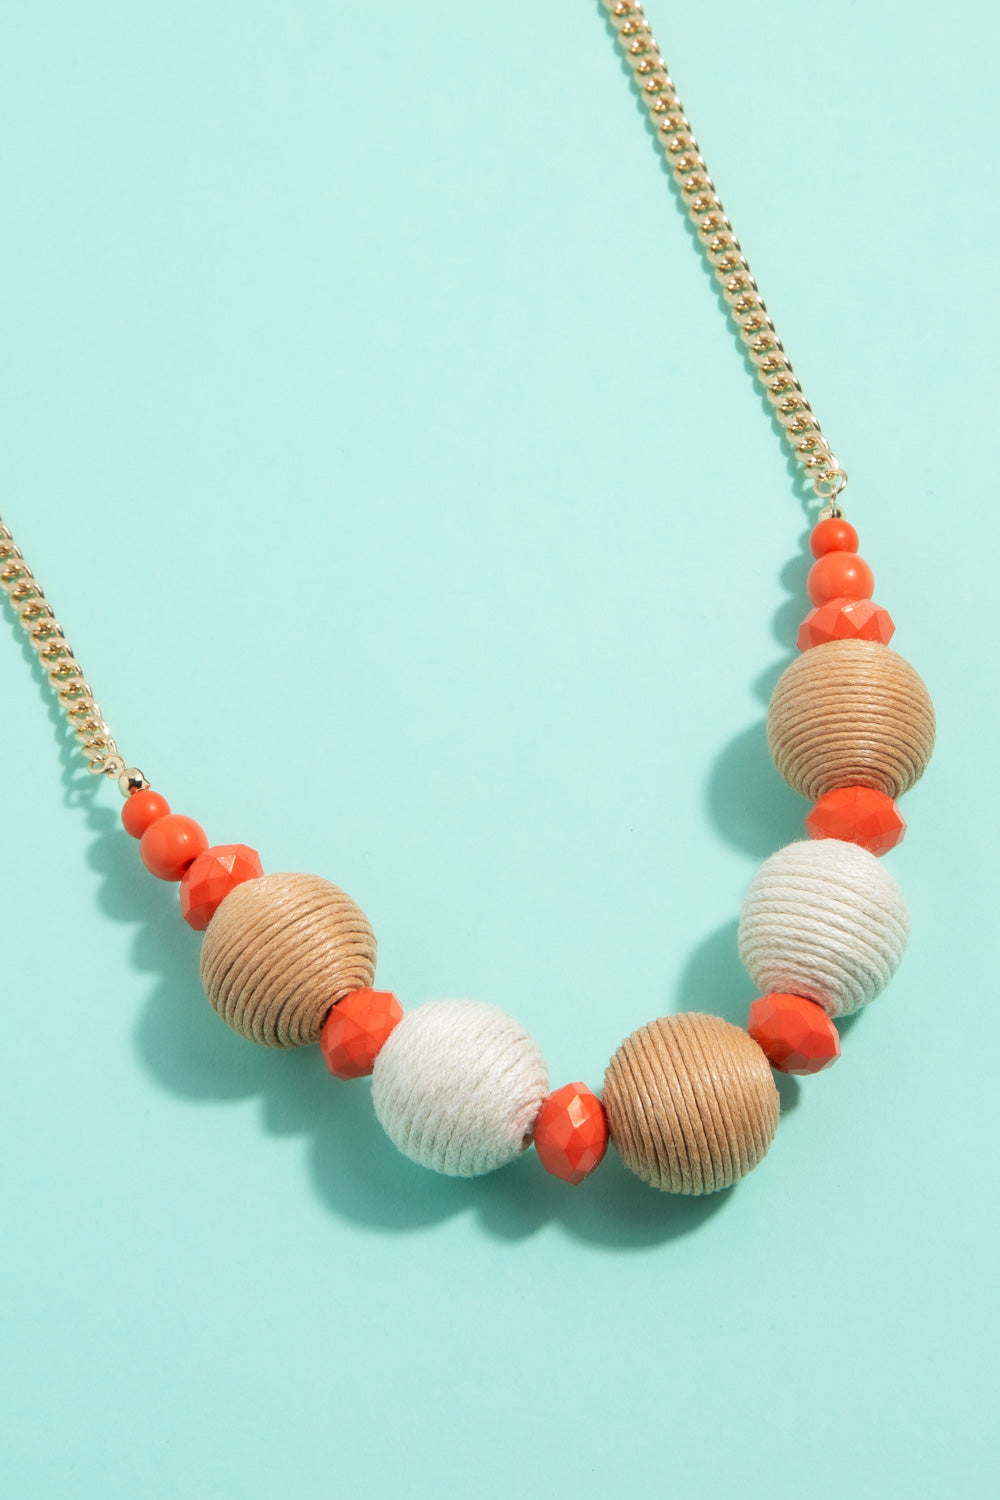 Type 1 Brazilian Beach Necklace